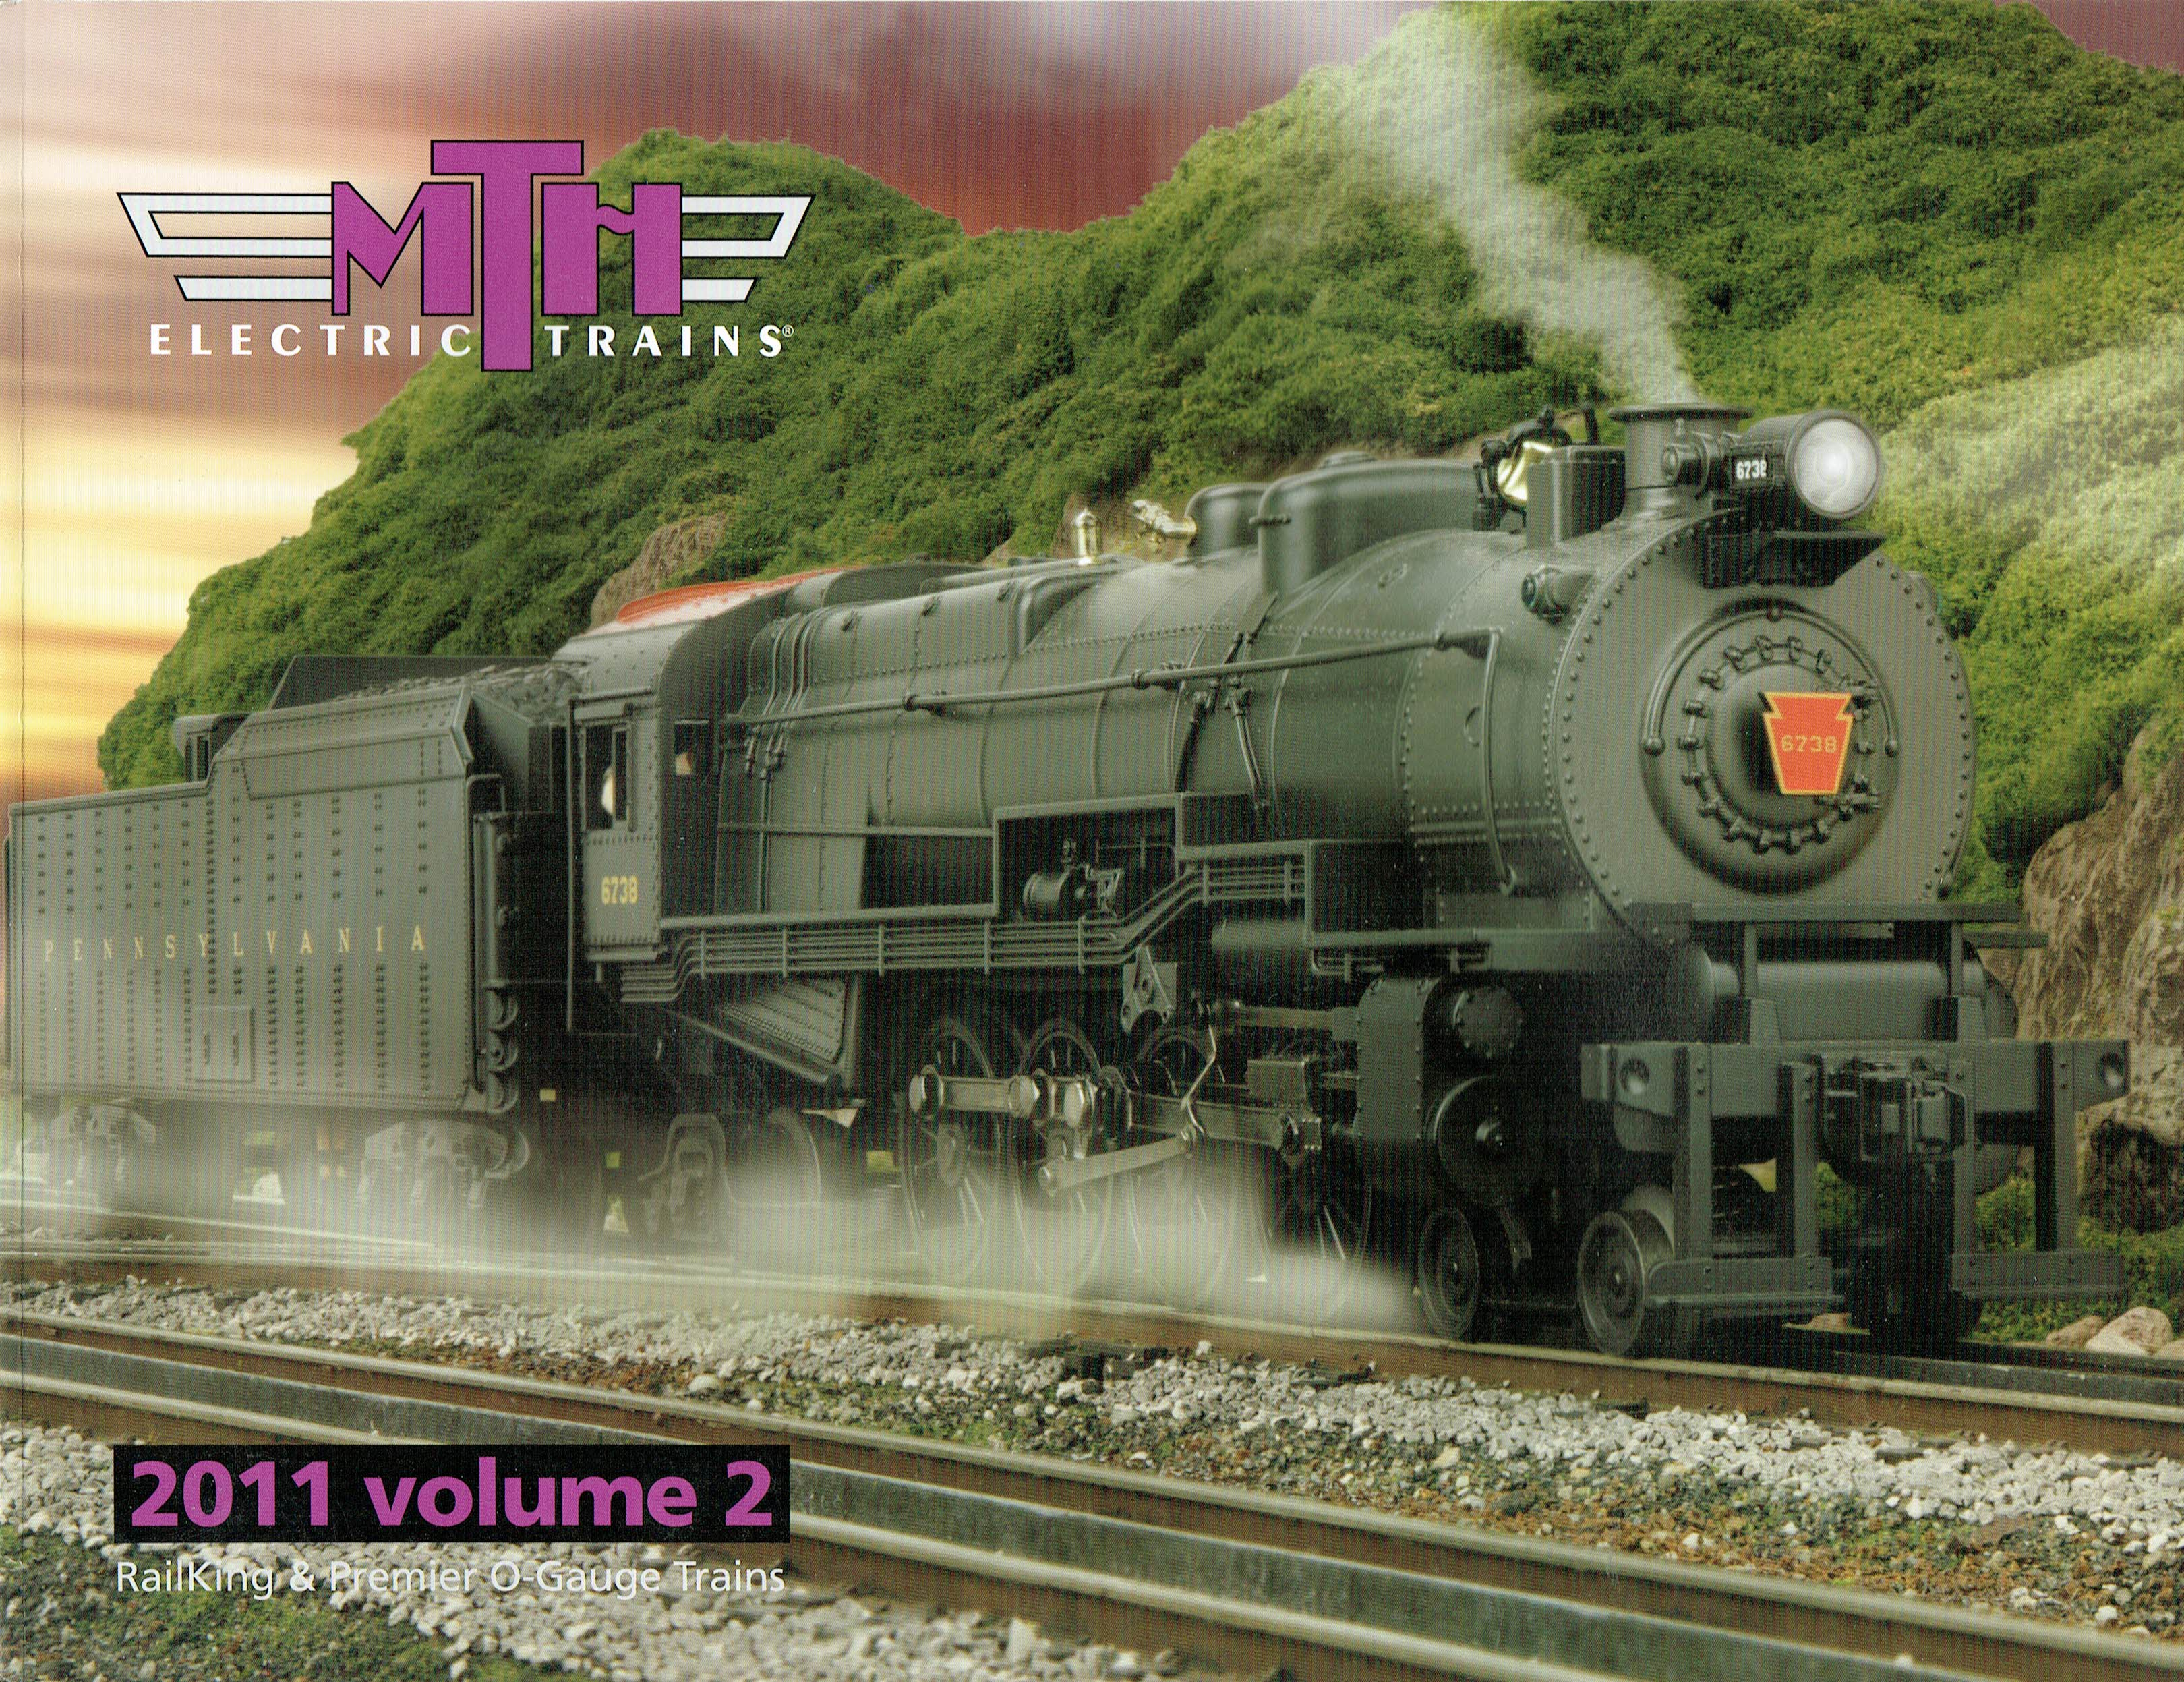 MTH 2011 Volume 2 Catalog image